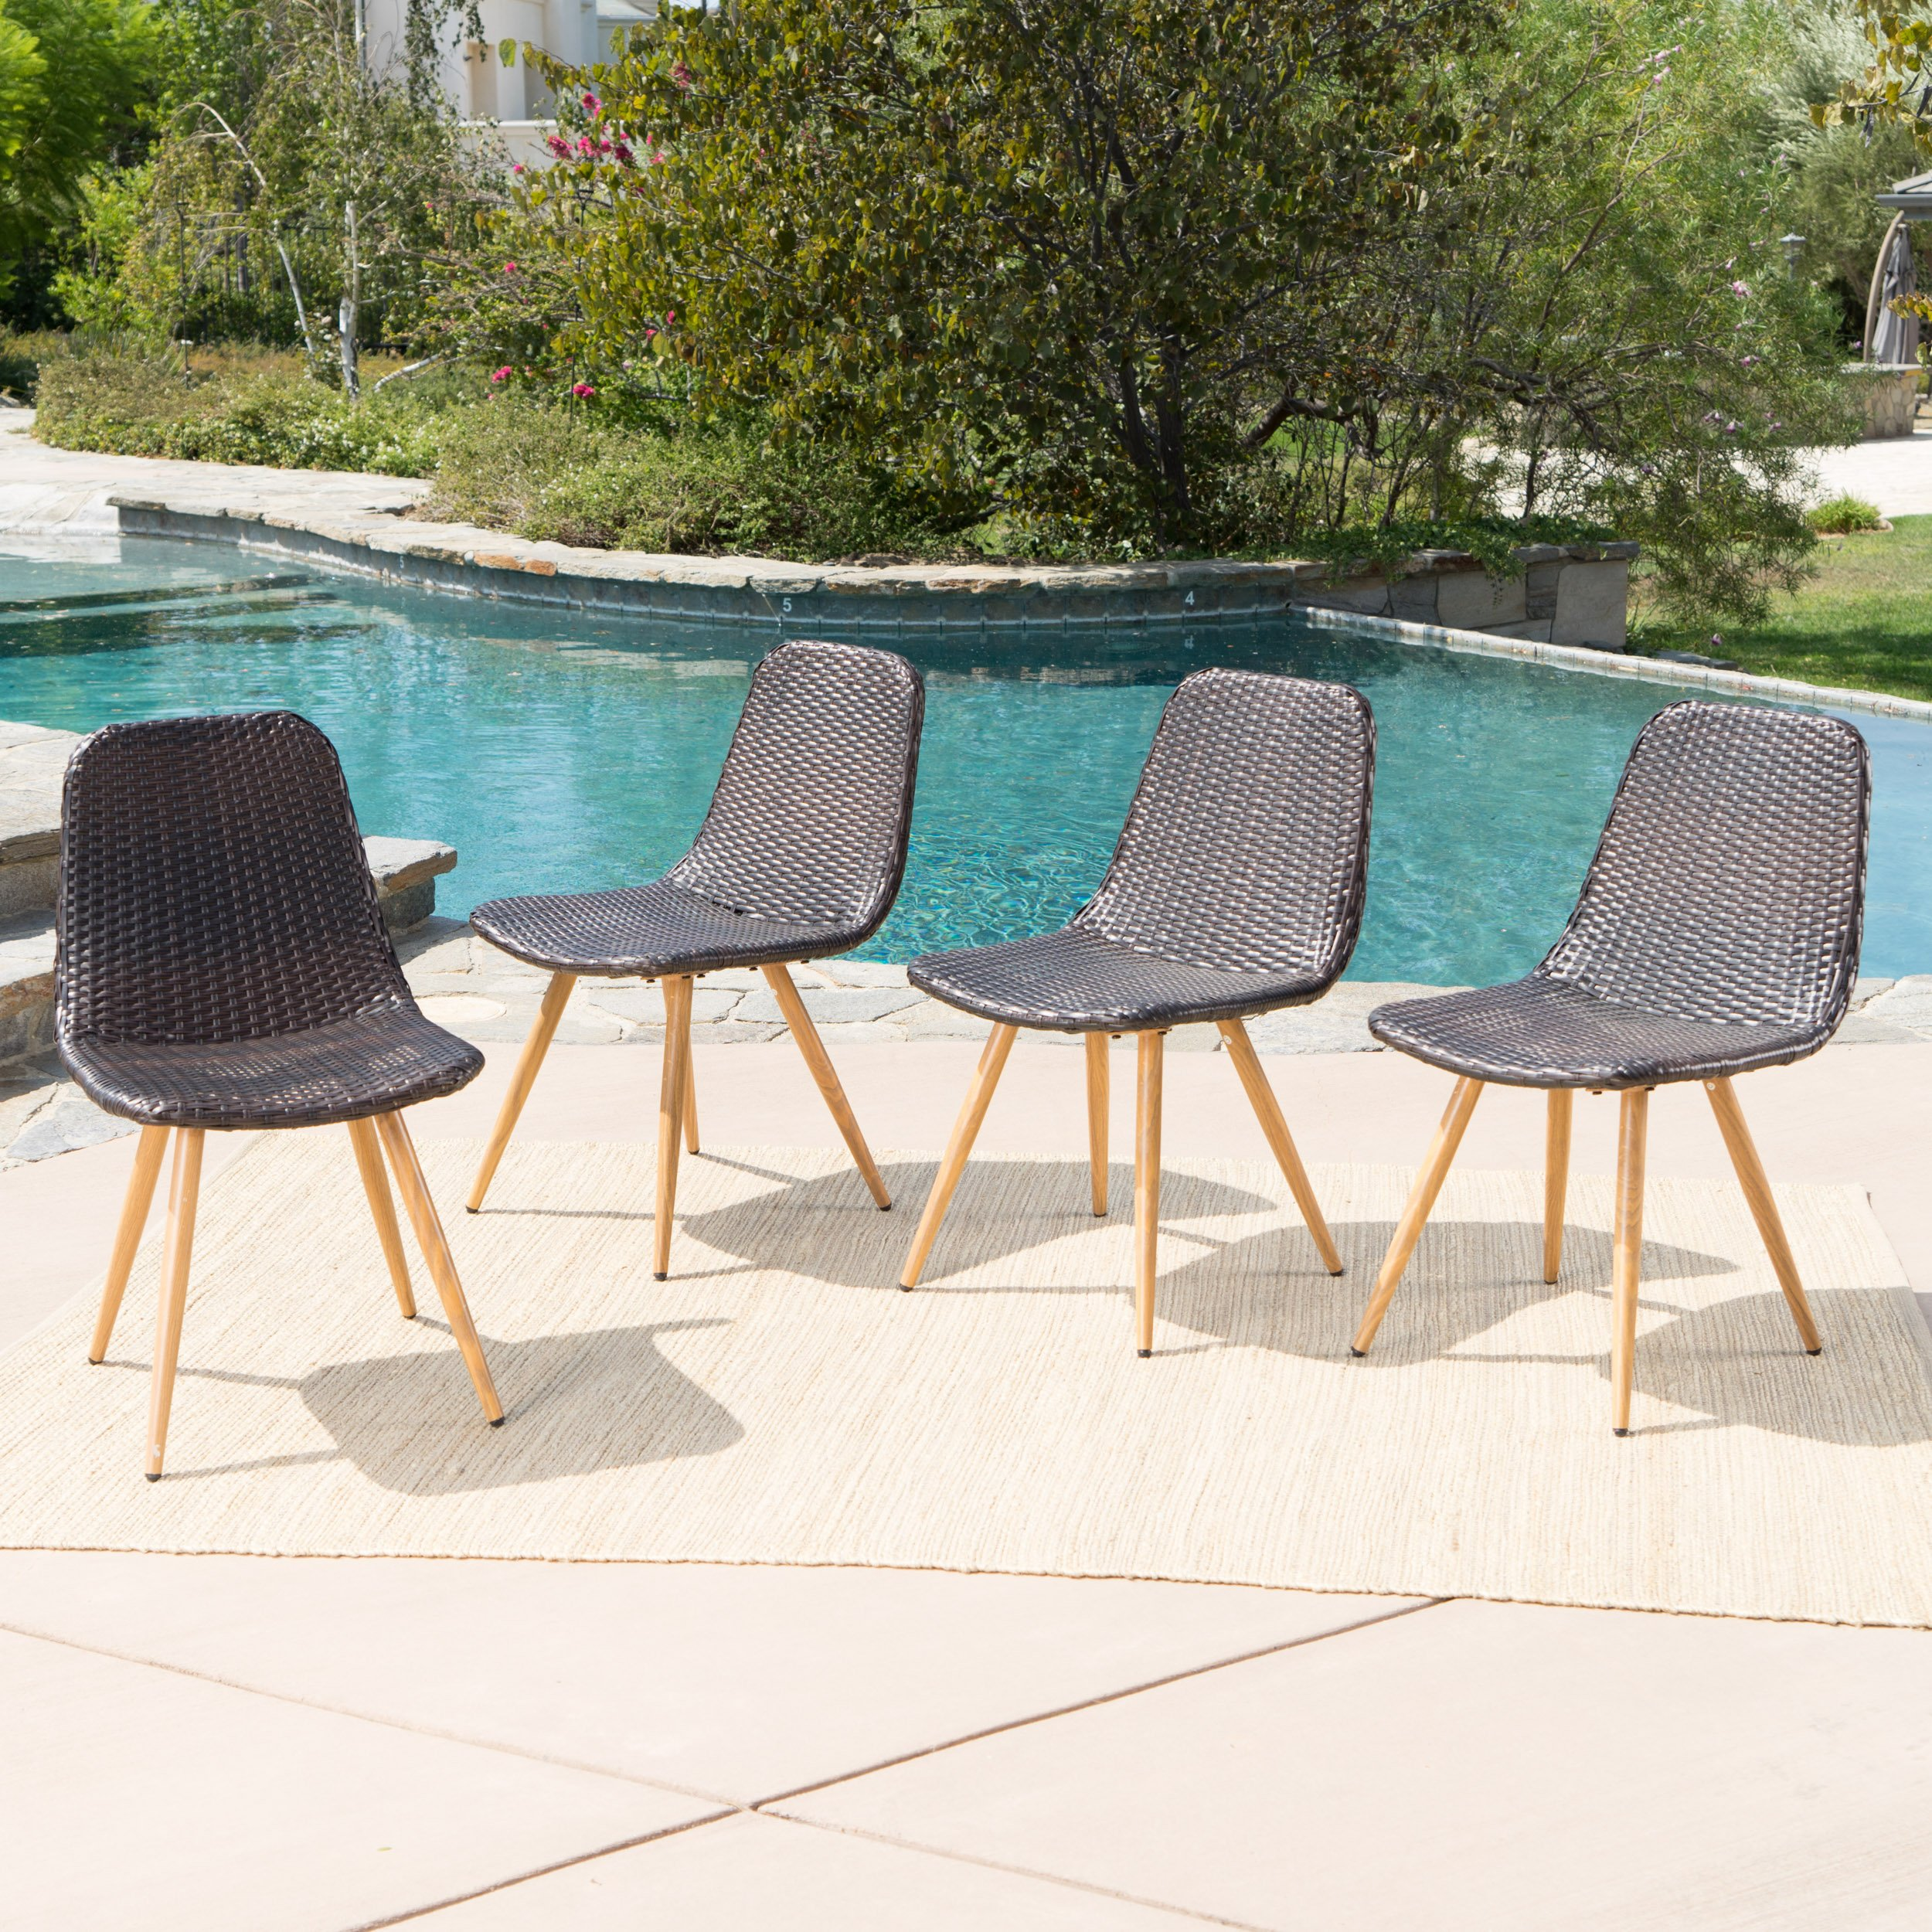 Gilda Outdoor Multi-Brown Wicker Dining Chairs with Light Brown Wood Finished Metal Legs (Set of 4)